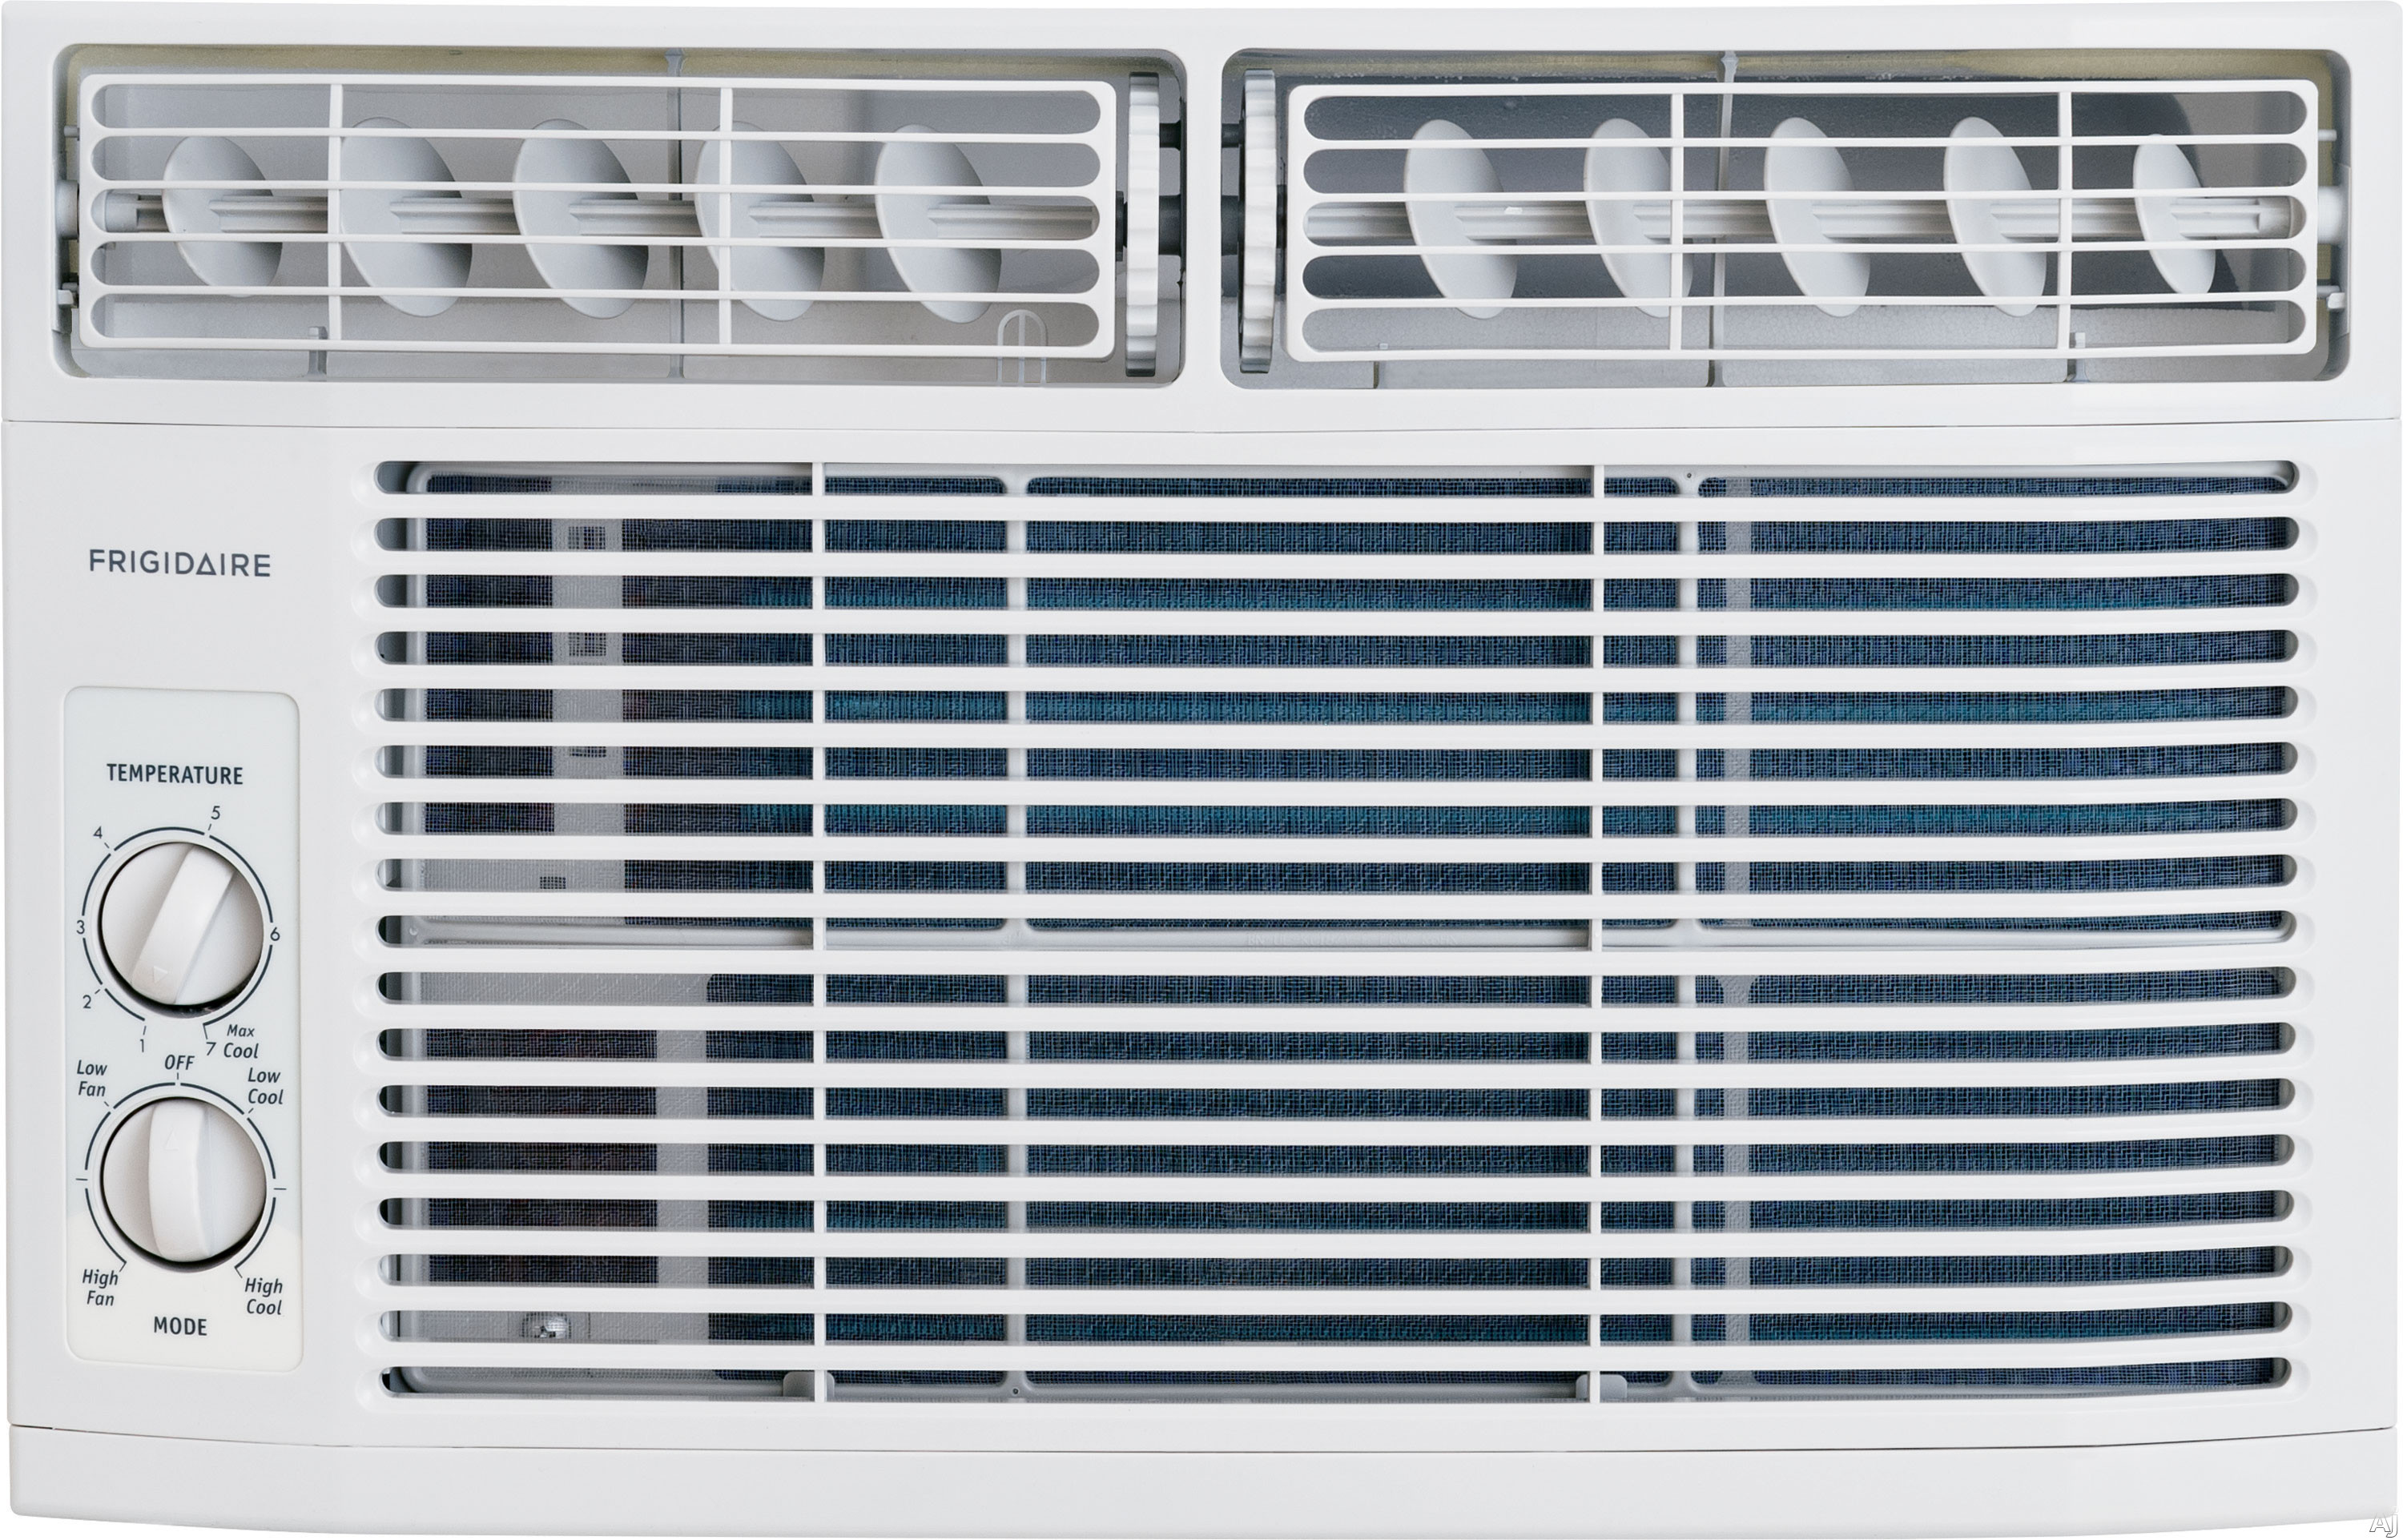 Home > Air Conditioners > Room Air Conditioners > FFRA0811Q1 #1F303F